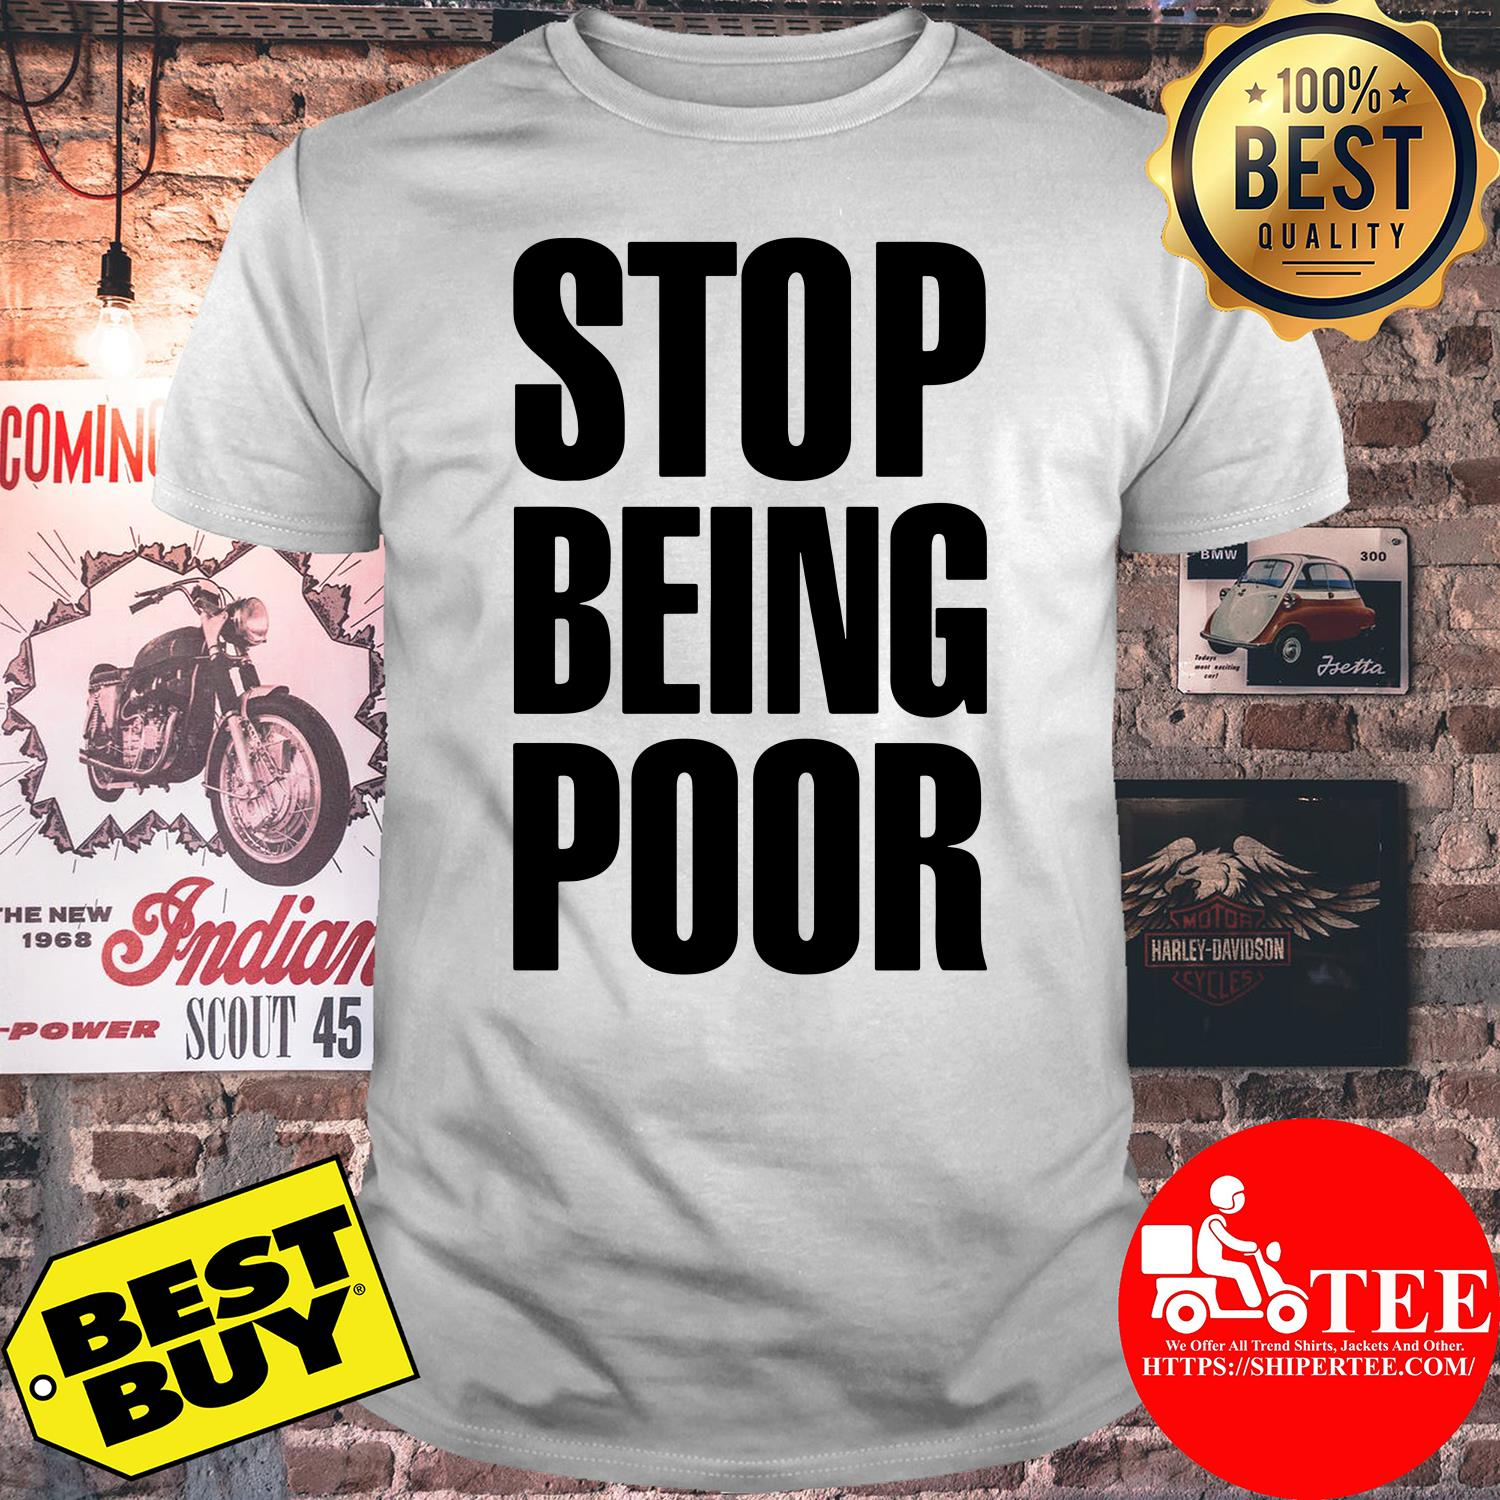 Stop Being Poor Paris Hilton shirt